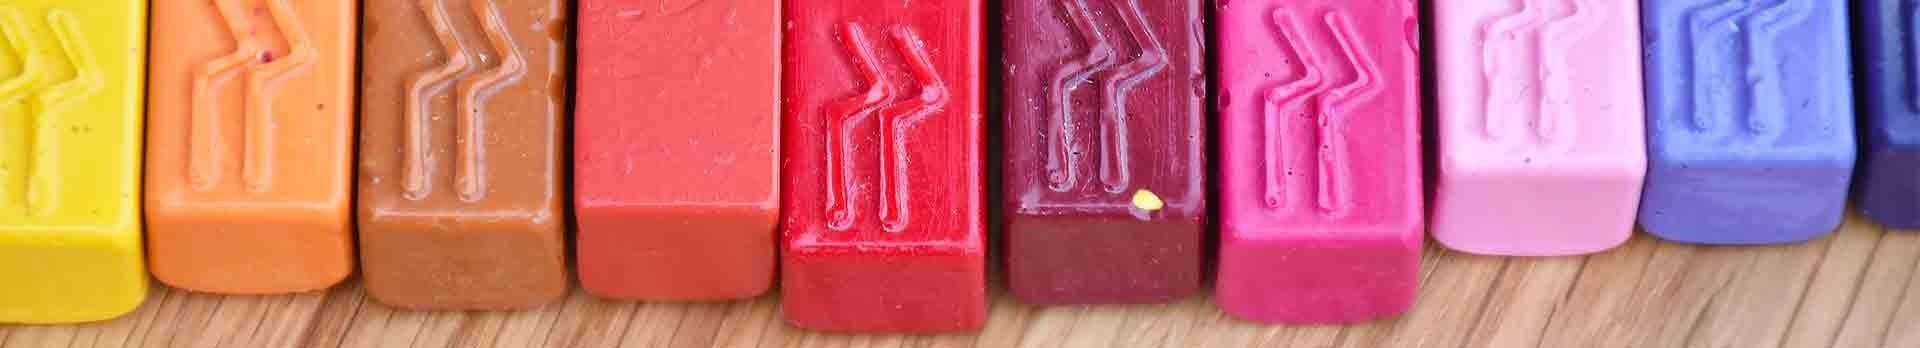 Sealing wax stick, natural and colorful: Made in France by L'Ecritoire